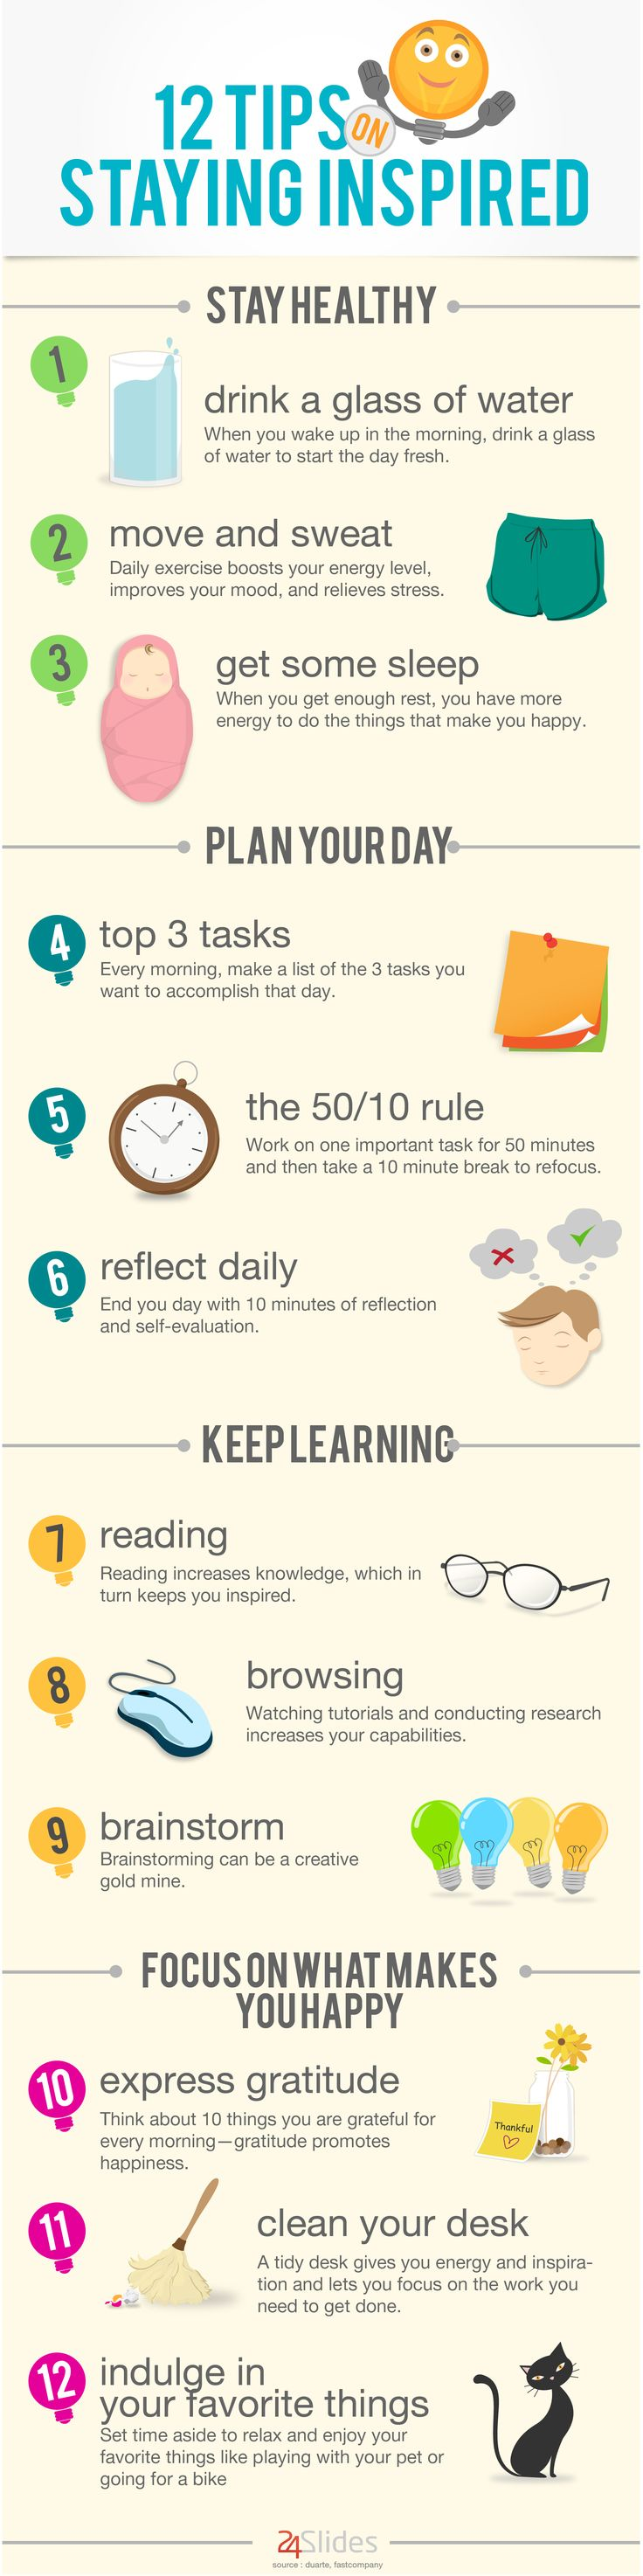 12 tips to stay inspired. Stay healthy by drinking water, moving, and get quality sleep. Plan your day, keep learning, and focus on what makes you hap